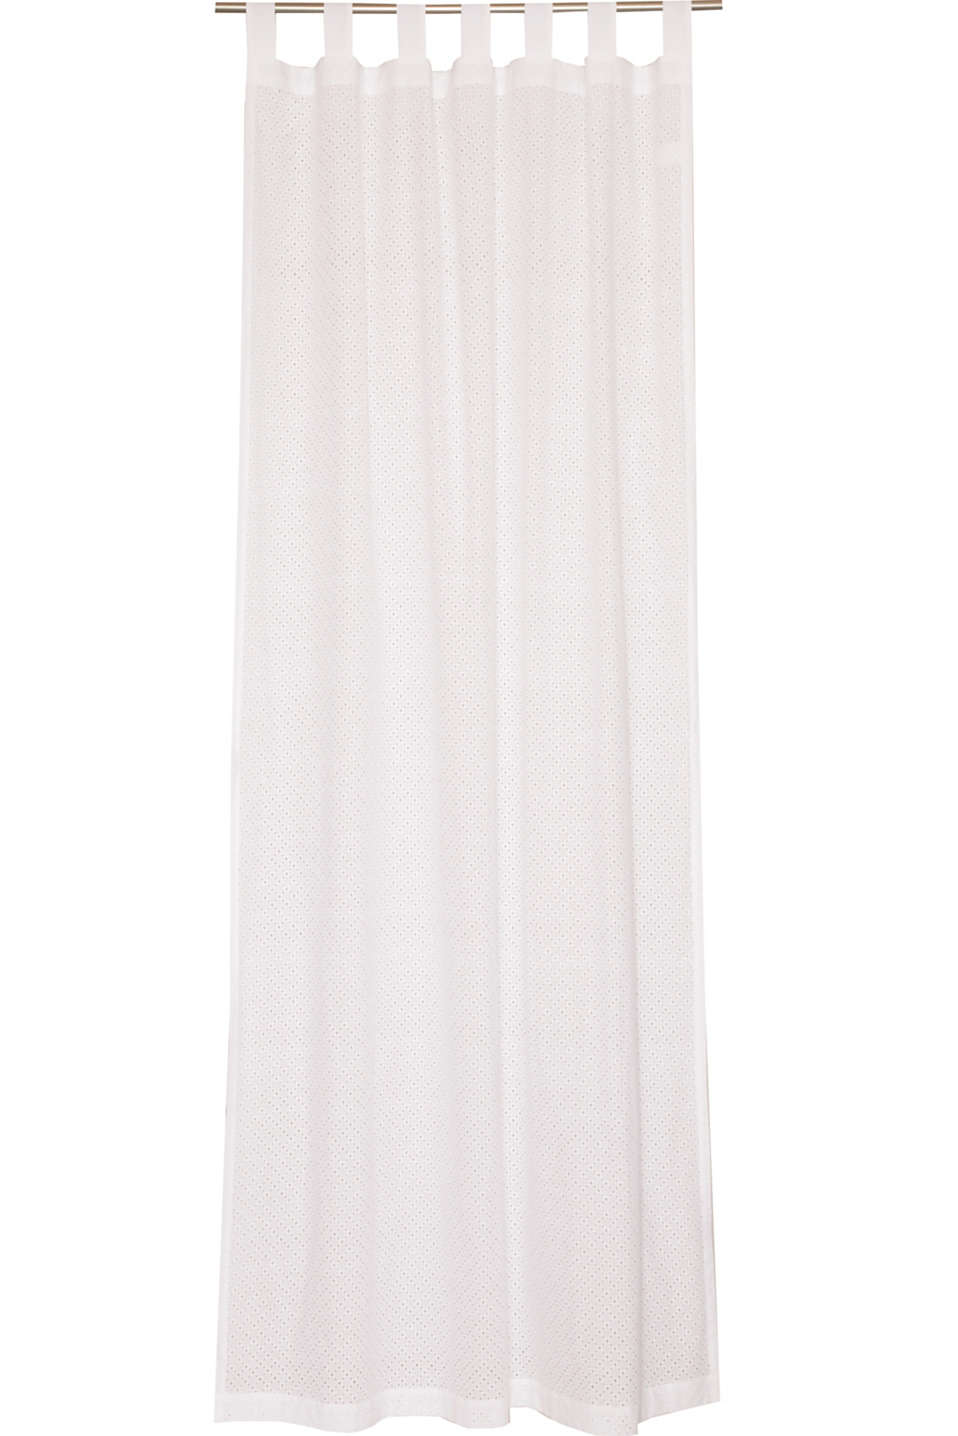 Esprit - Woven tab top curtain + broderie anglaise